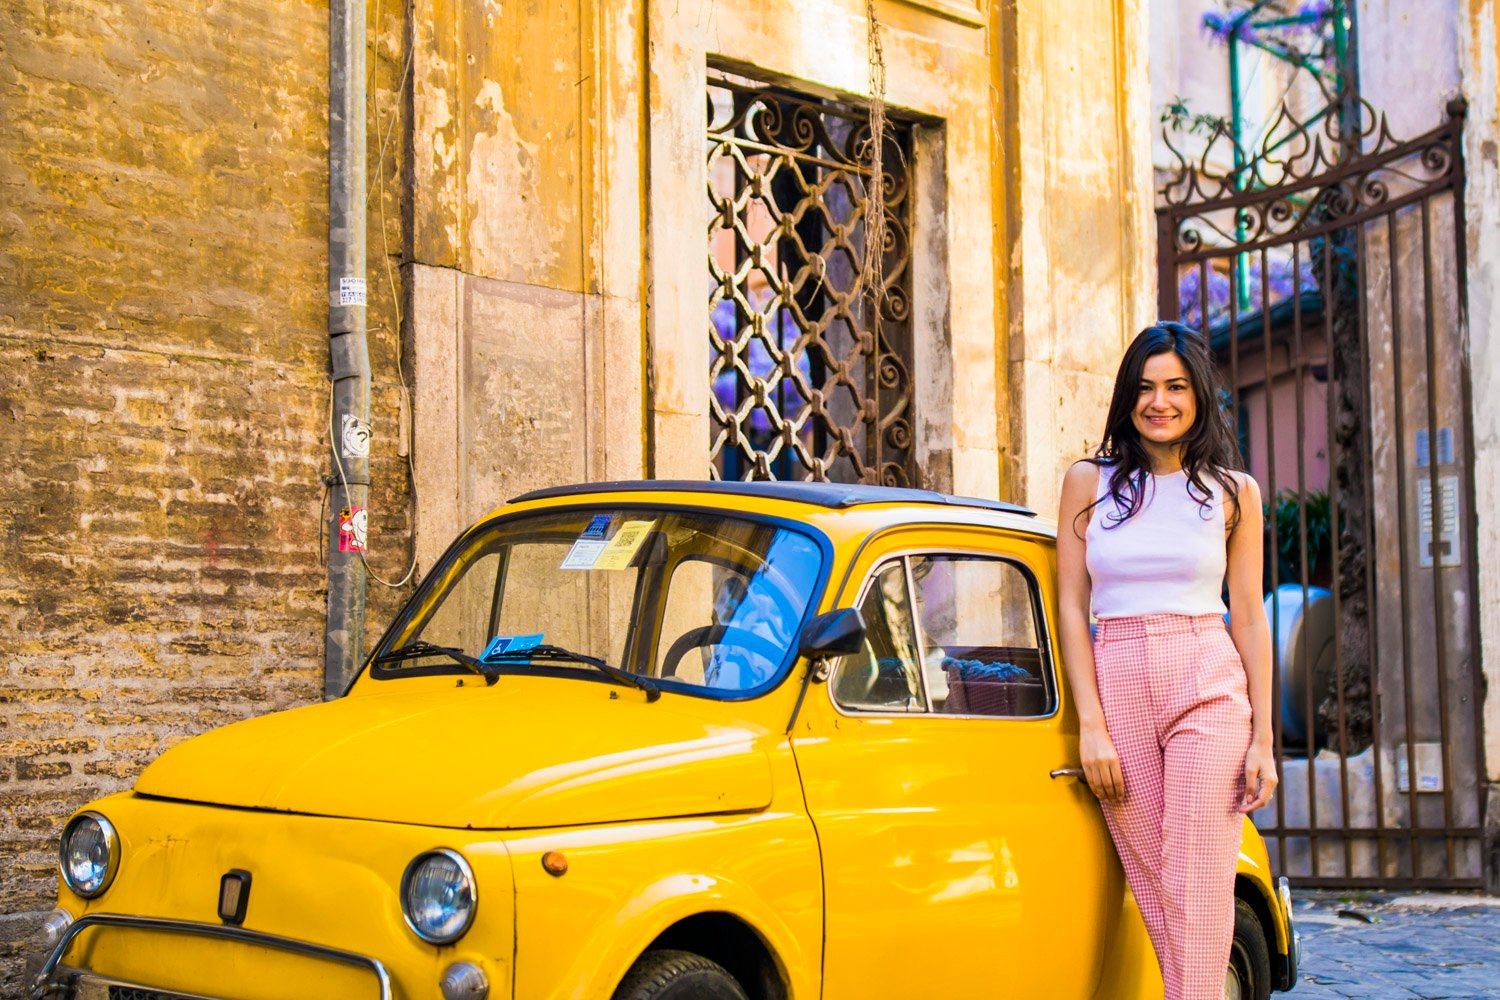 fiat 500 vintage car photo in rome